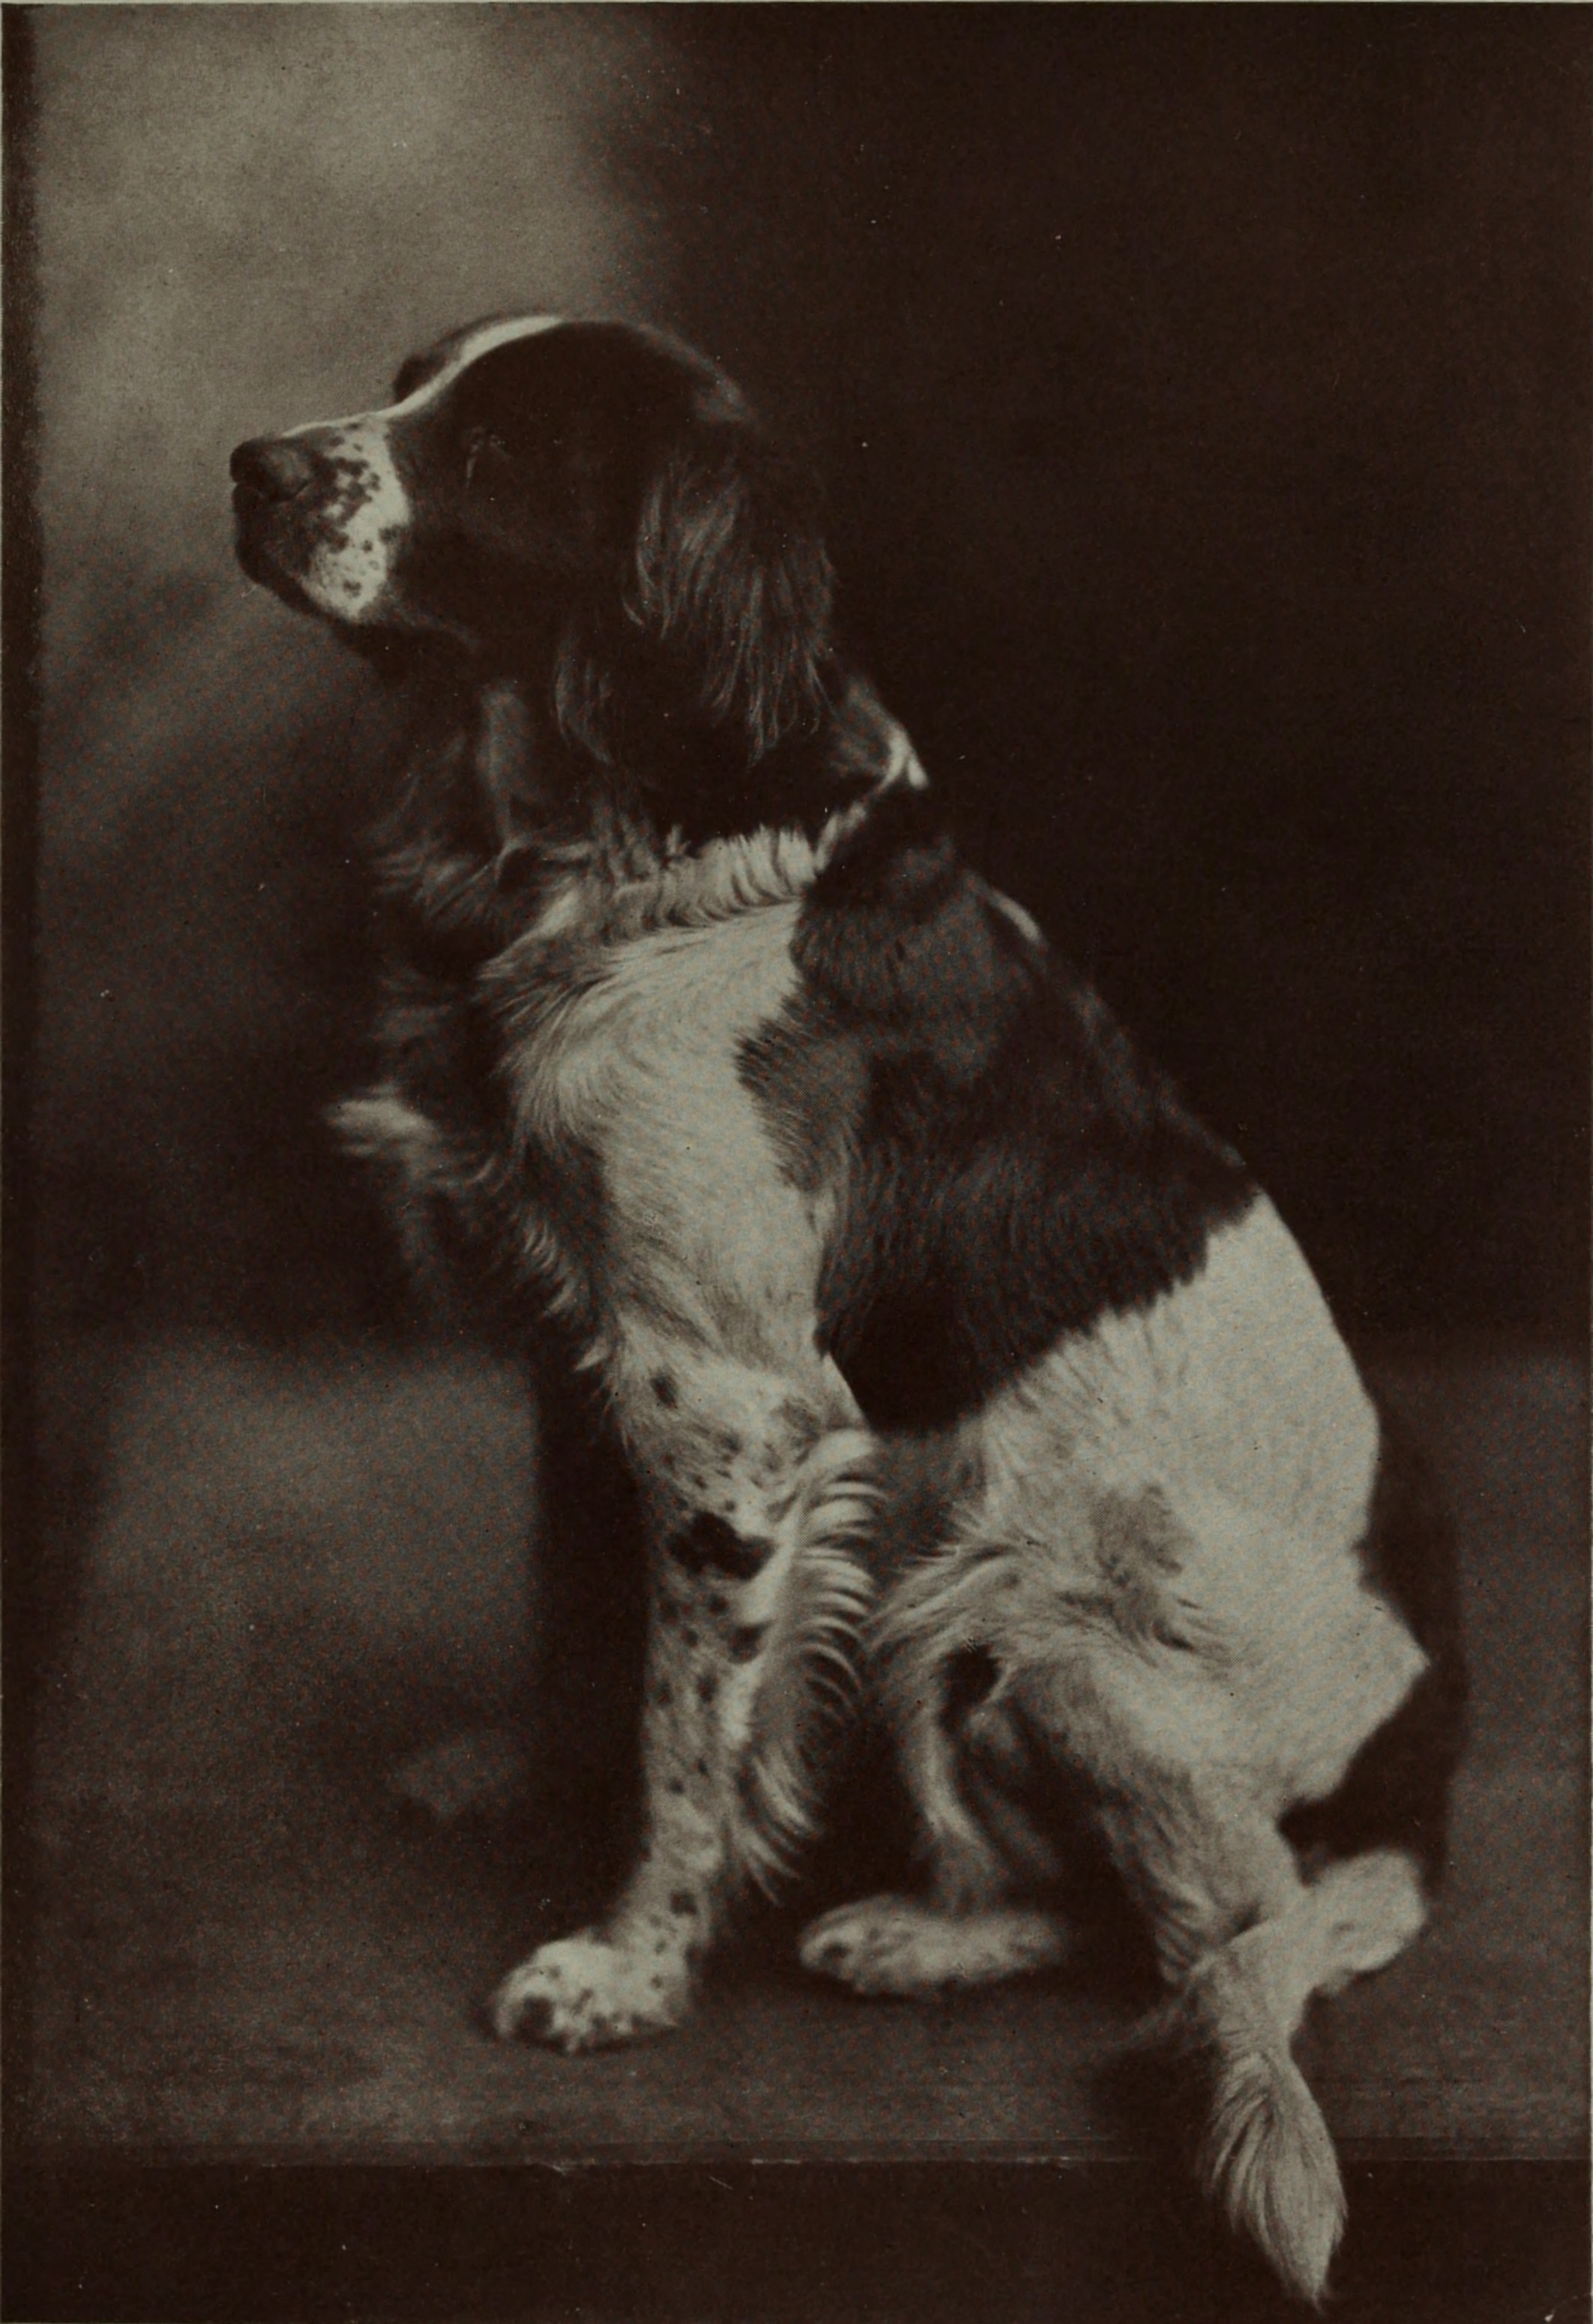 A dog by Belle Johnson about 1908